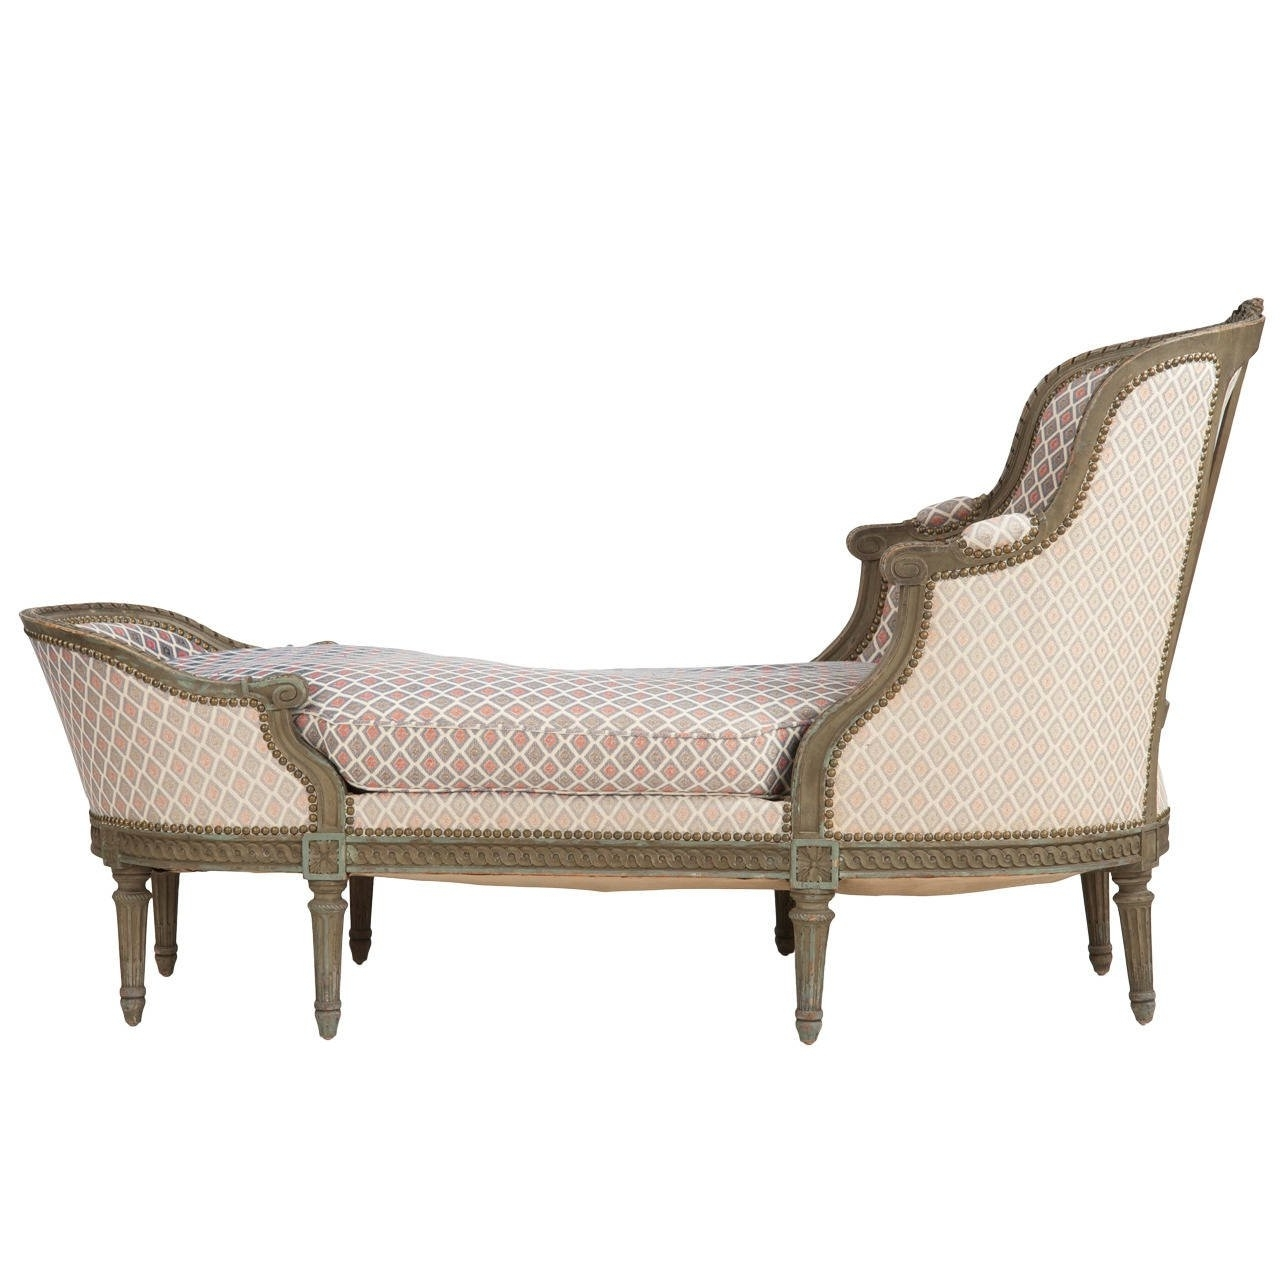 Victorian Chaise Lounge Chairs For Most Up To Date Antique Chaise Lounge Chair • Lounge Chairs Ideas (View 12 of 15)